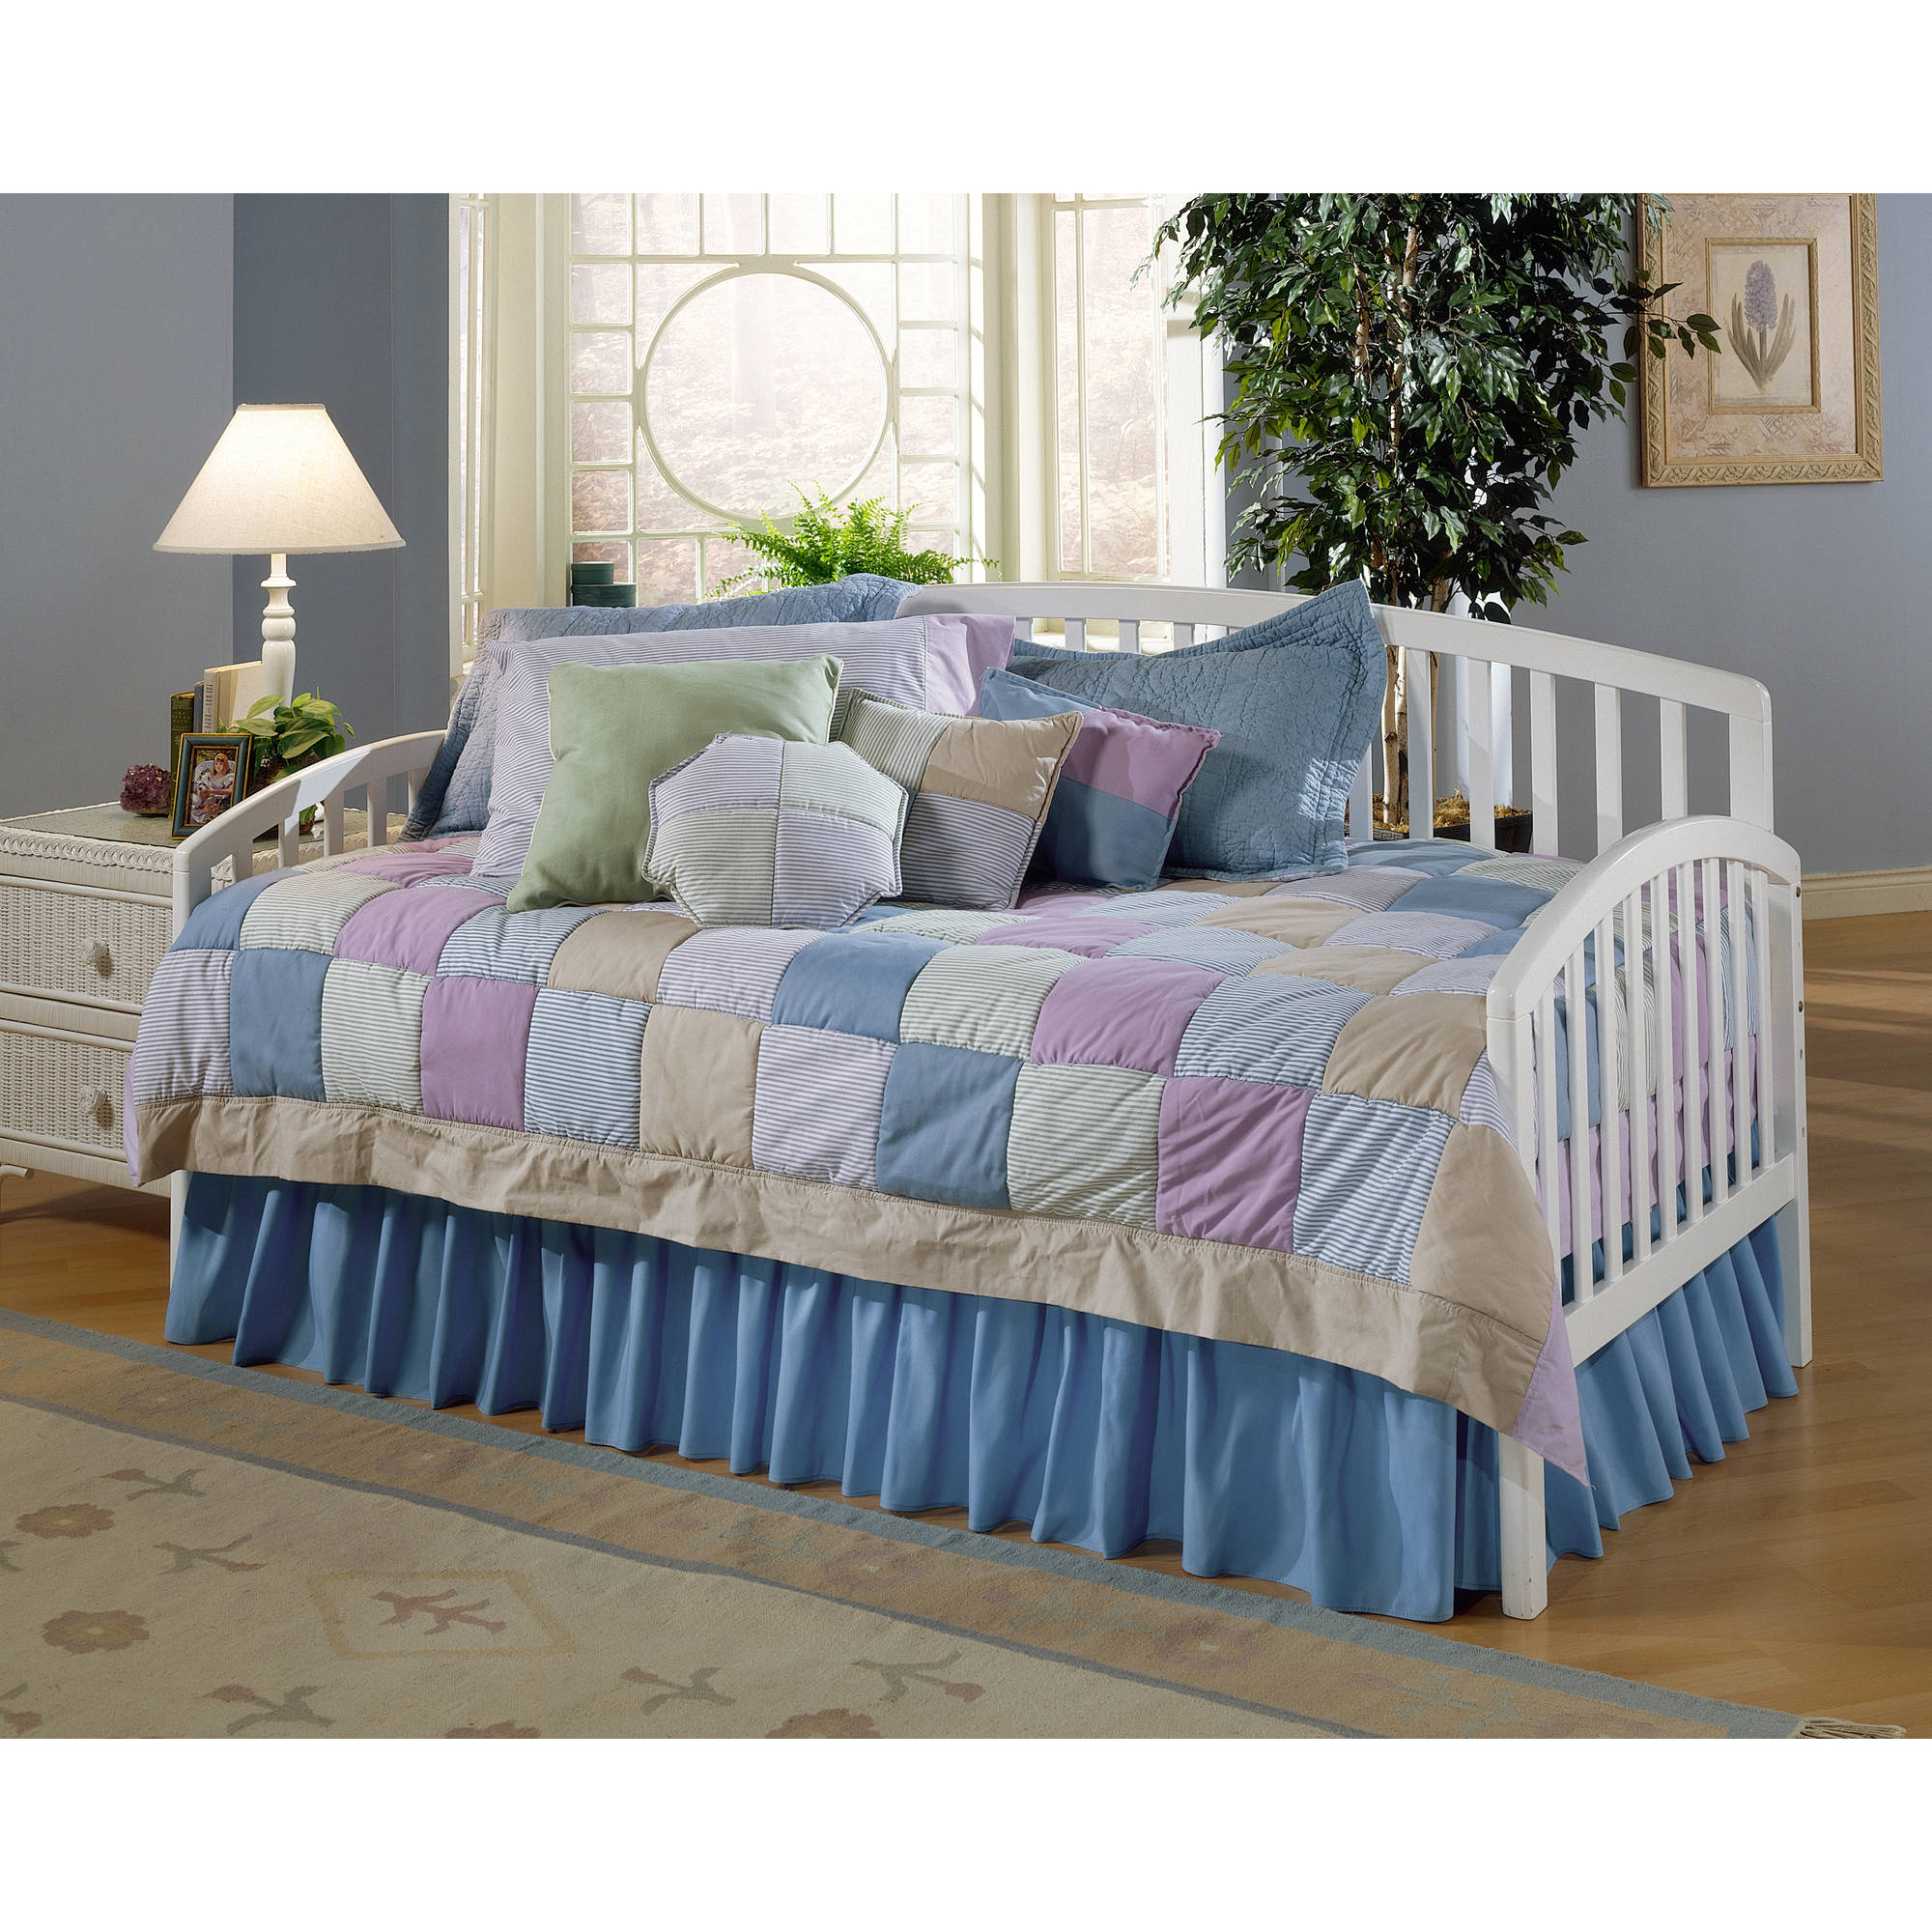 Hillsdale Furniture Carolina Day Bed Suspension Deck Not Included by Hillsdale Furniture